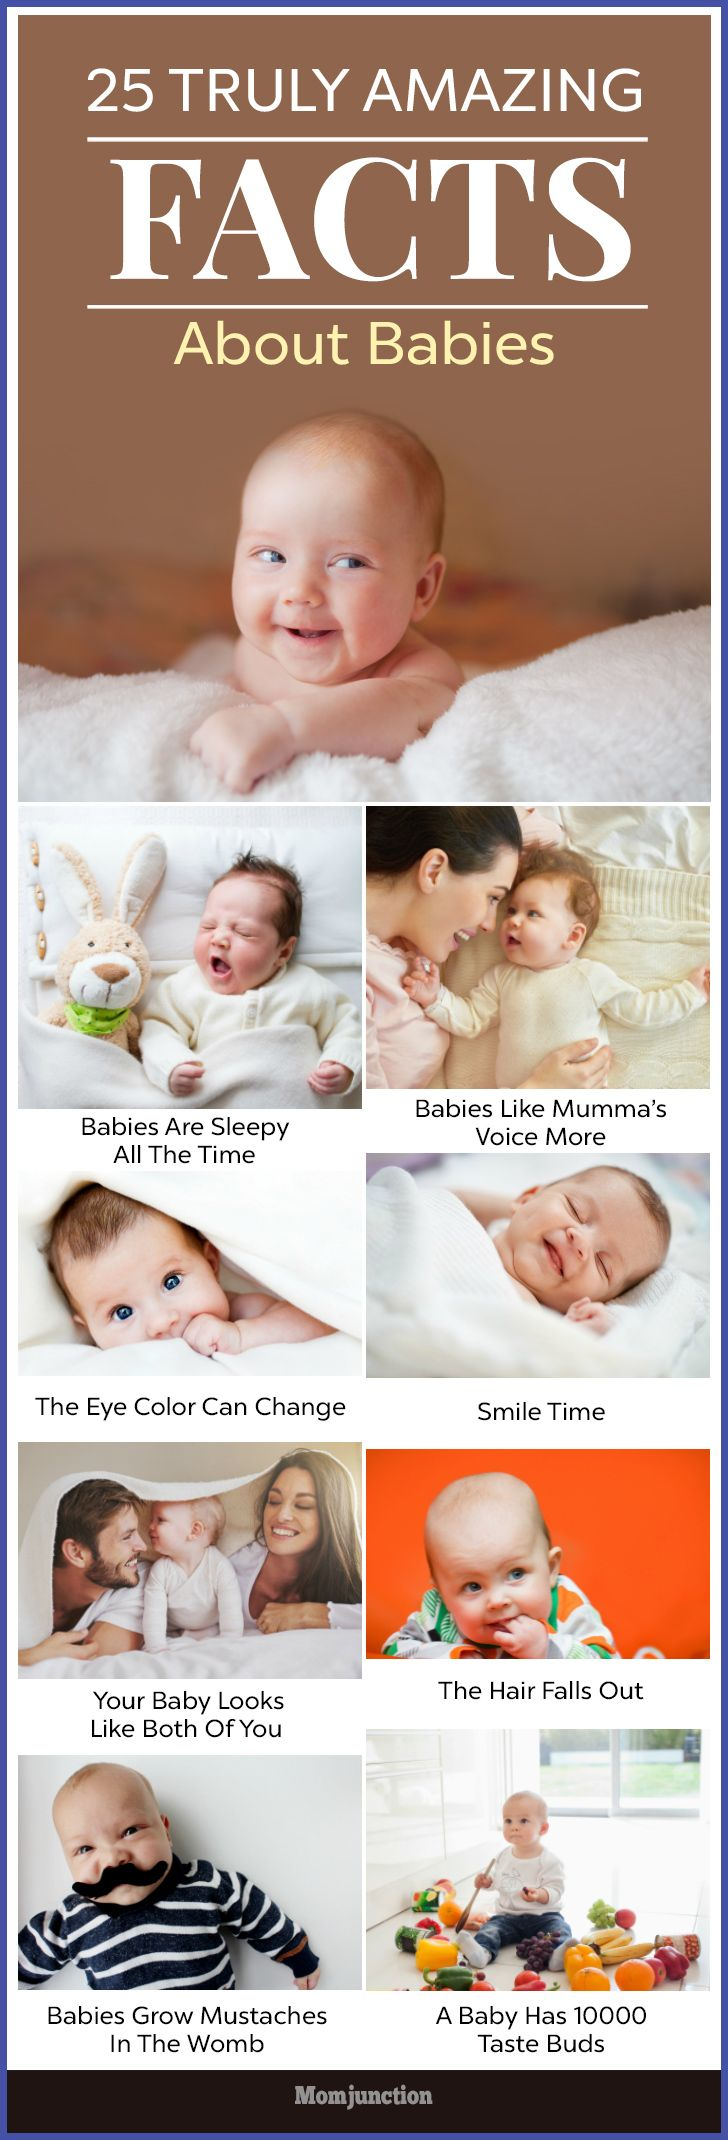 Baby facts these amazing facts about babies will surprise you